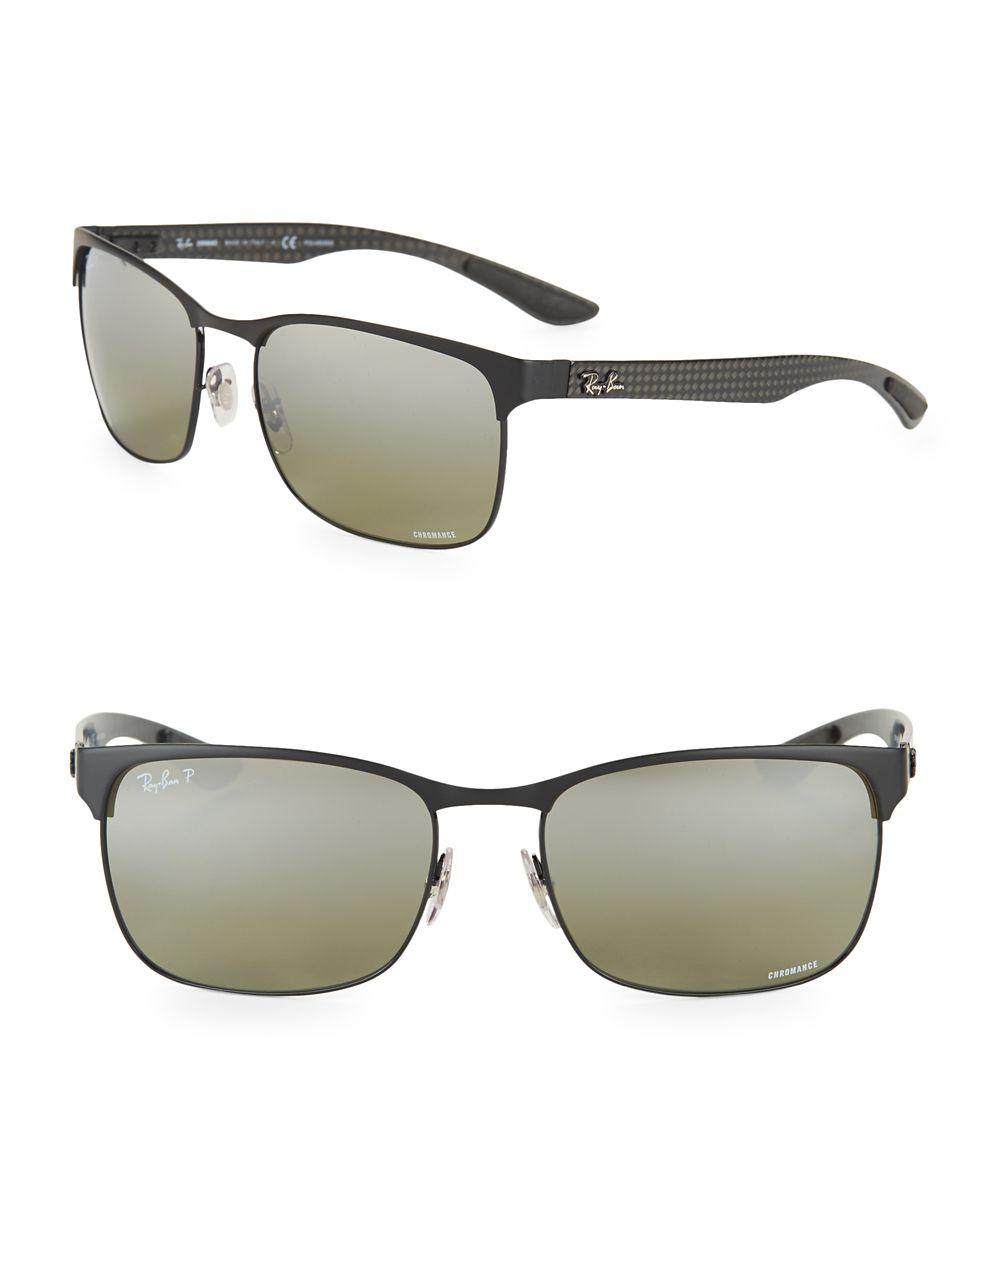 68d72a203ef Ray-Ban Chromance Sunglasses in Black for Men - Lyst